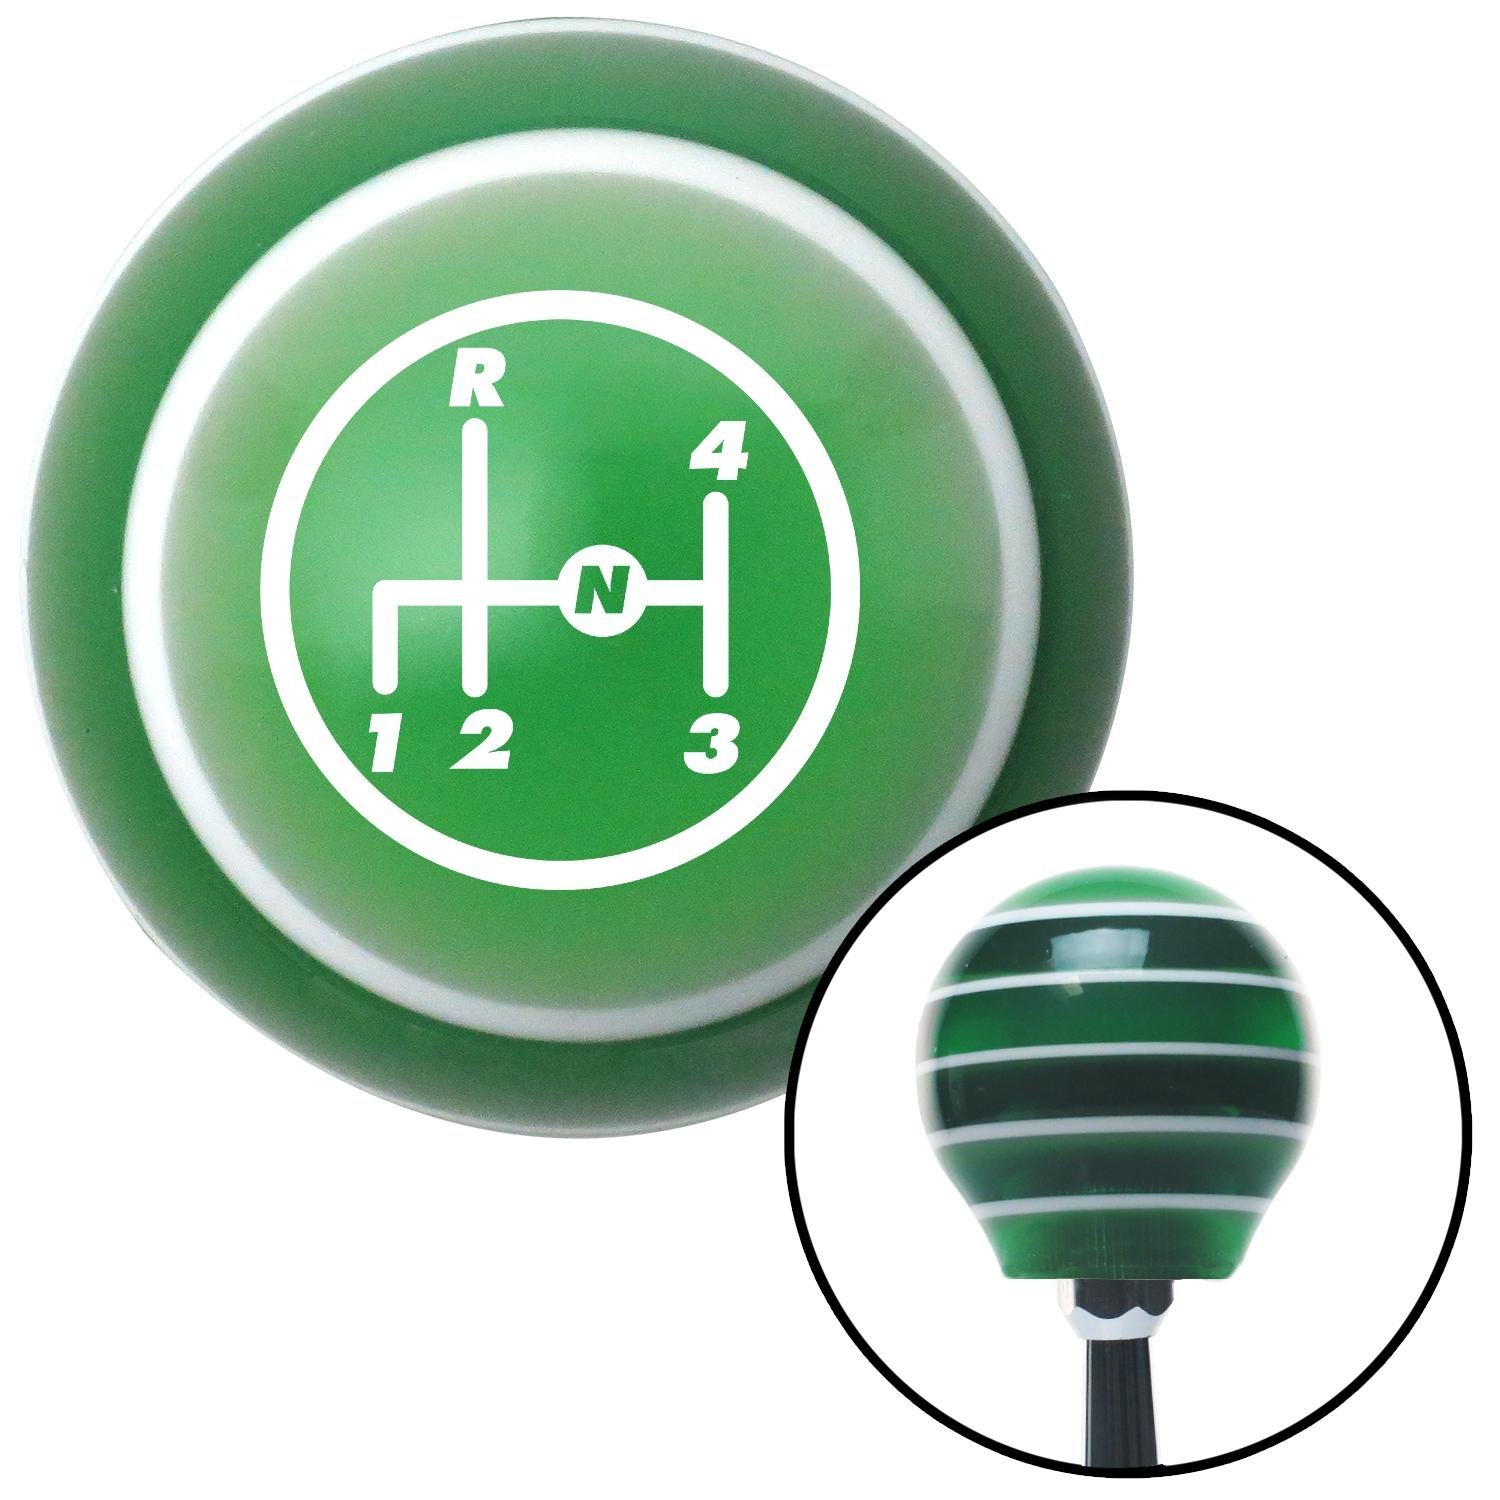 White 4 Speed Shift Pattern - 4UR-RDL American Shifter 126668 Green Stripe Shift Knob with M16 x 1.5 Insert